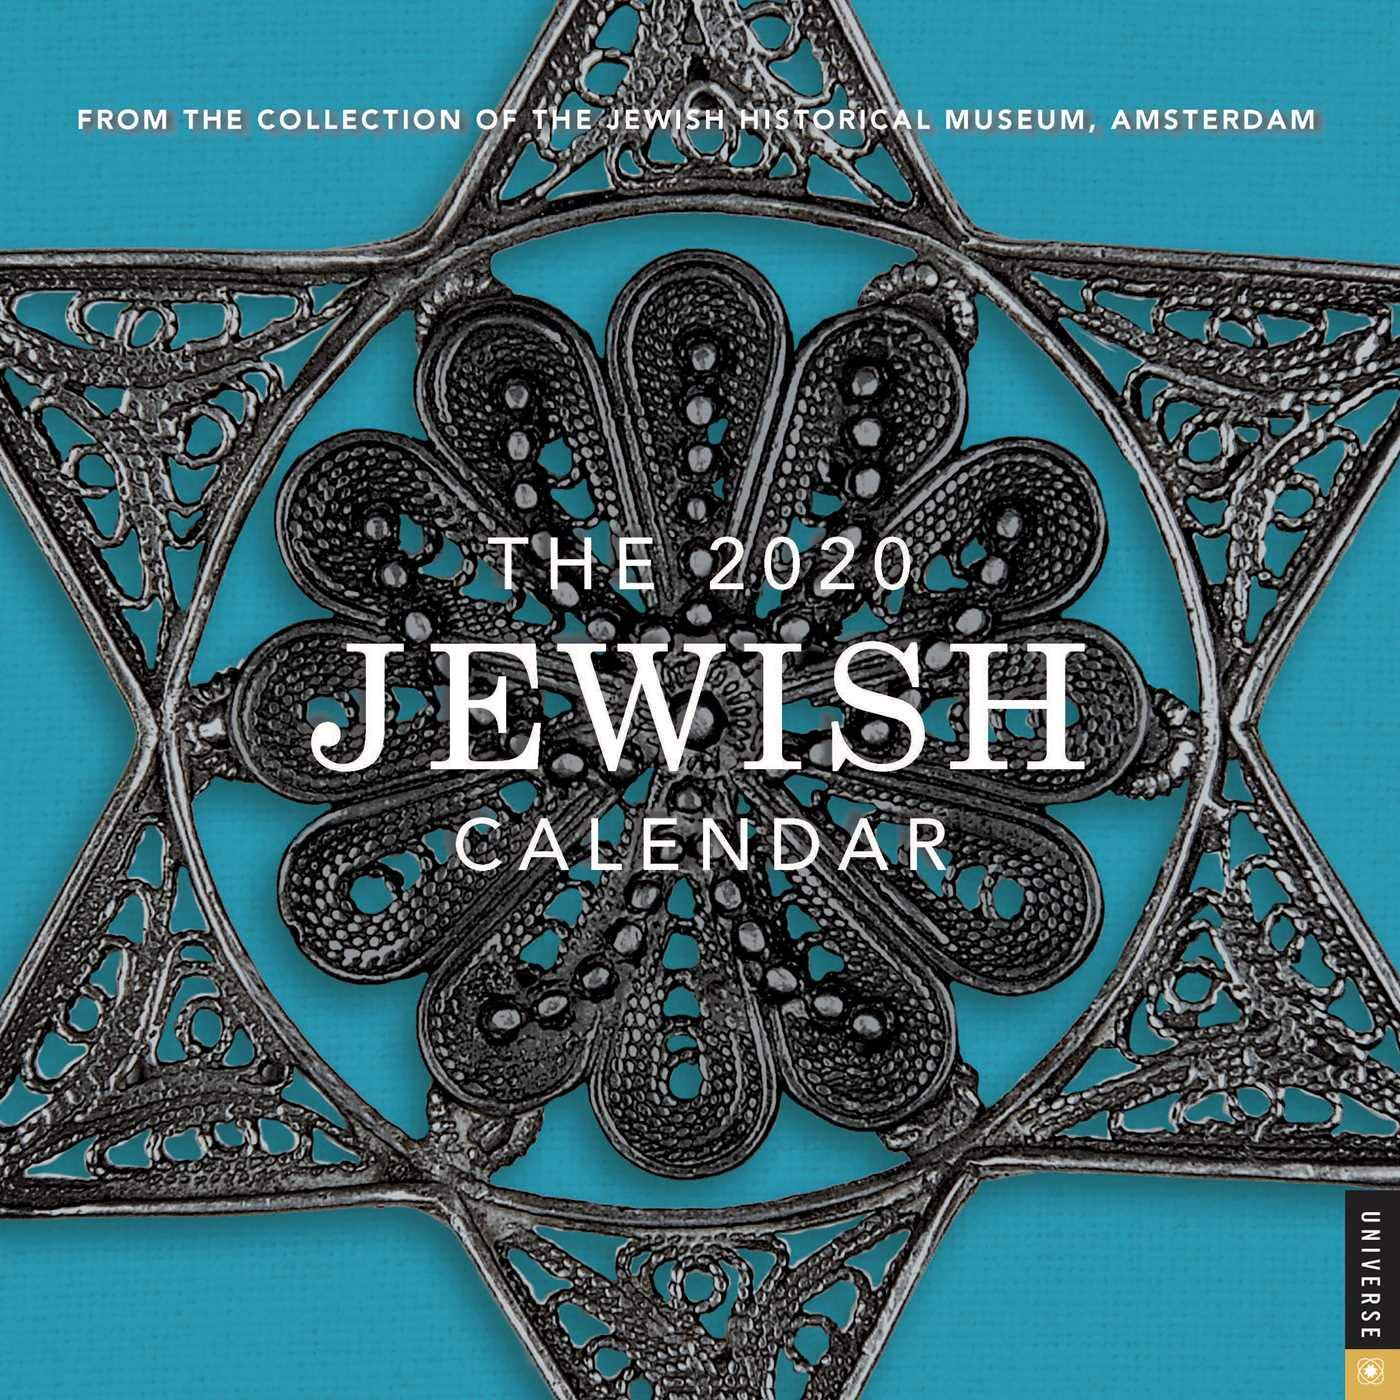 Hebrew English Calendar 2020 The 2020 Jewish Calendar 16 Month Wall Calendar: Jewish Year 5780